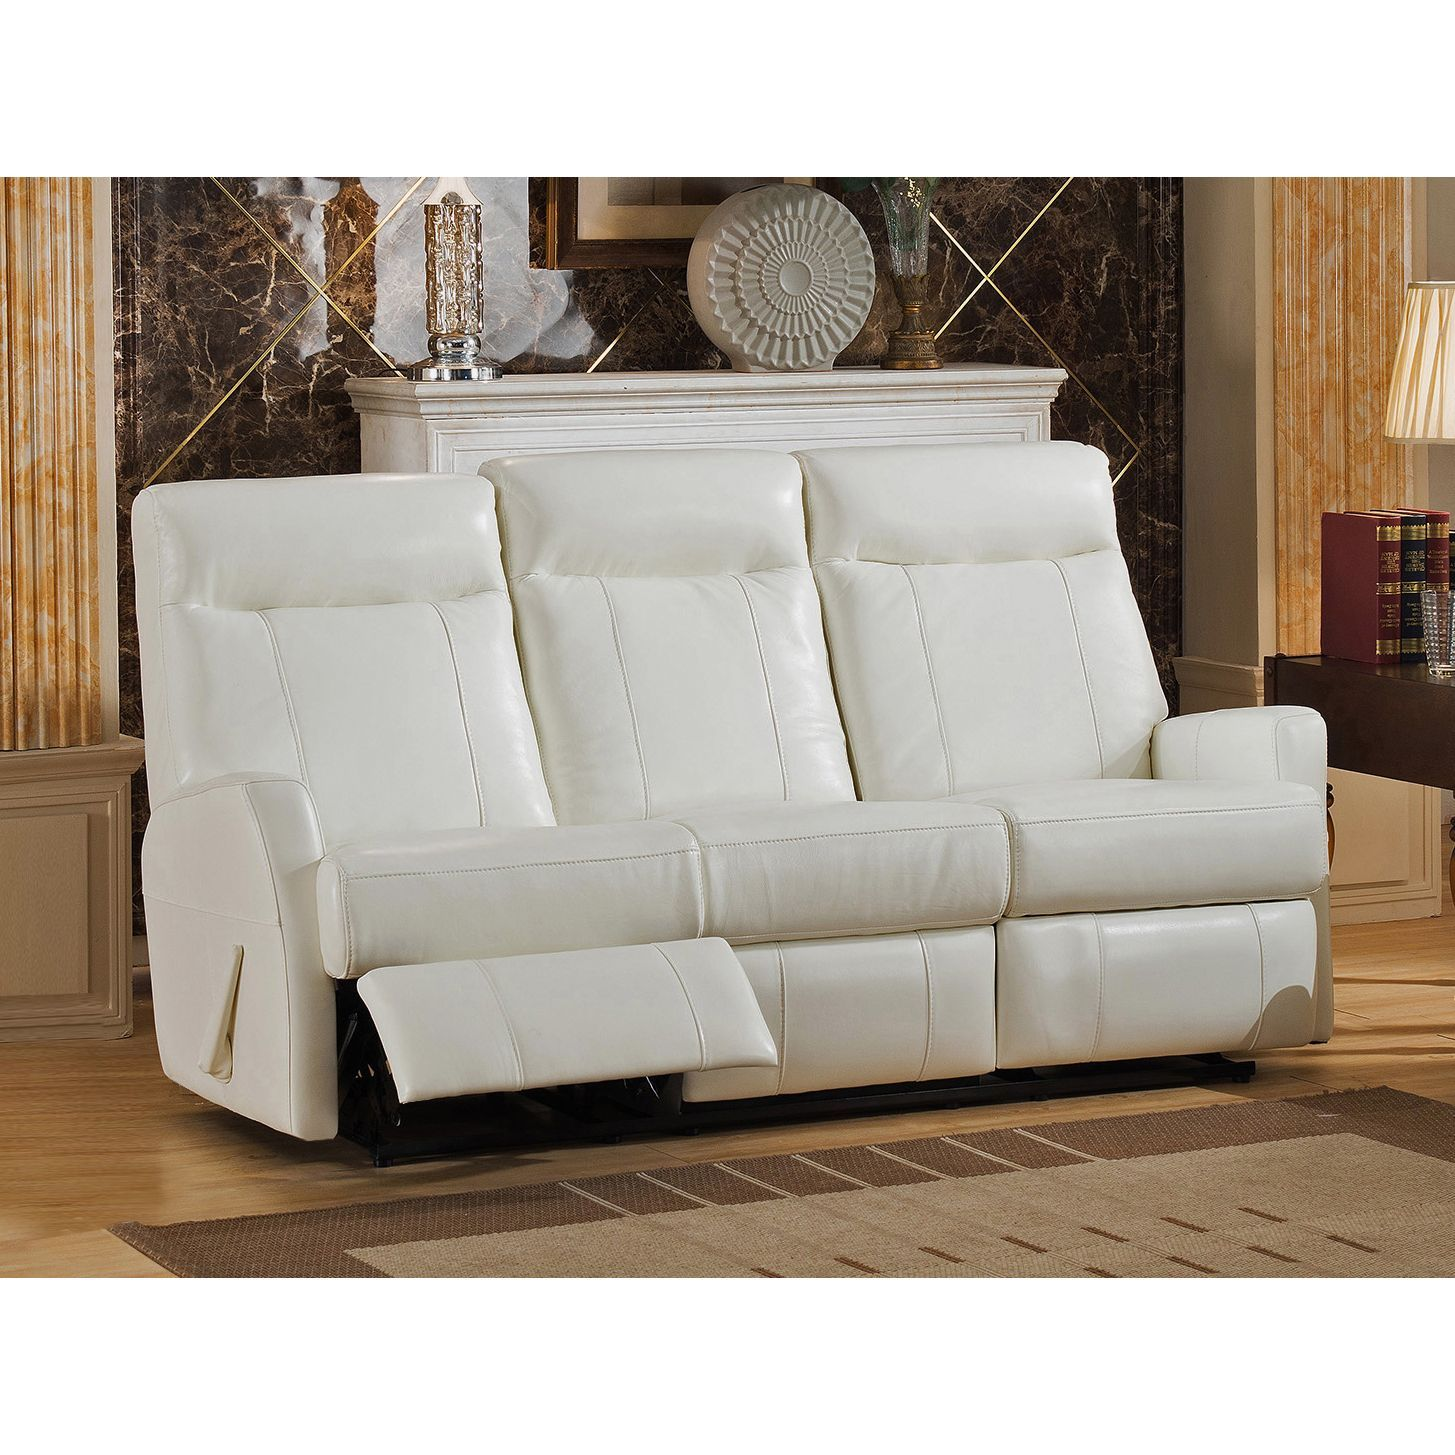 Wonderful The Toledo Leather Lay Flat Reclining Sofa Has Leather And Features  Pillow Top Padded Arms Ideas